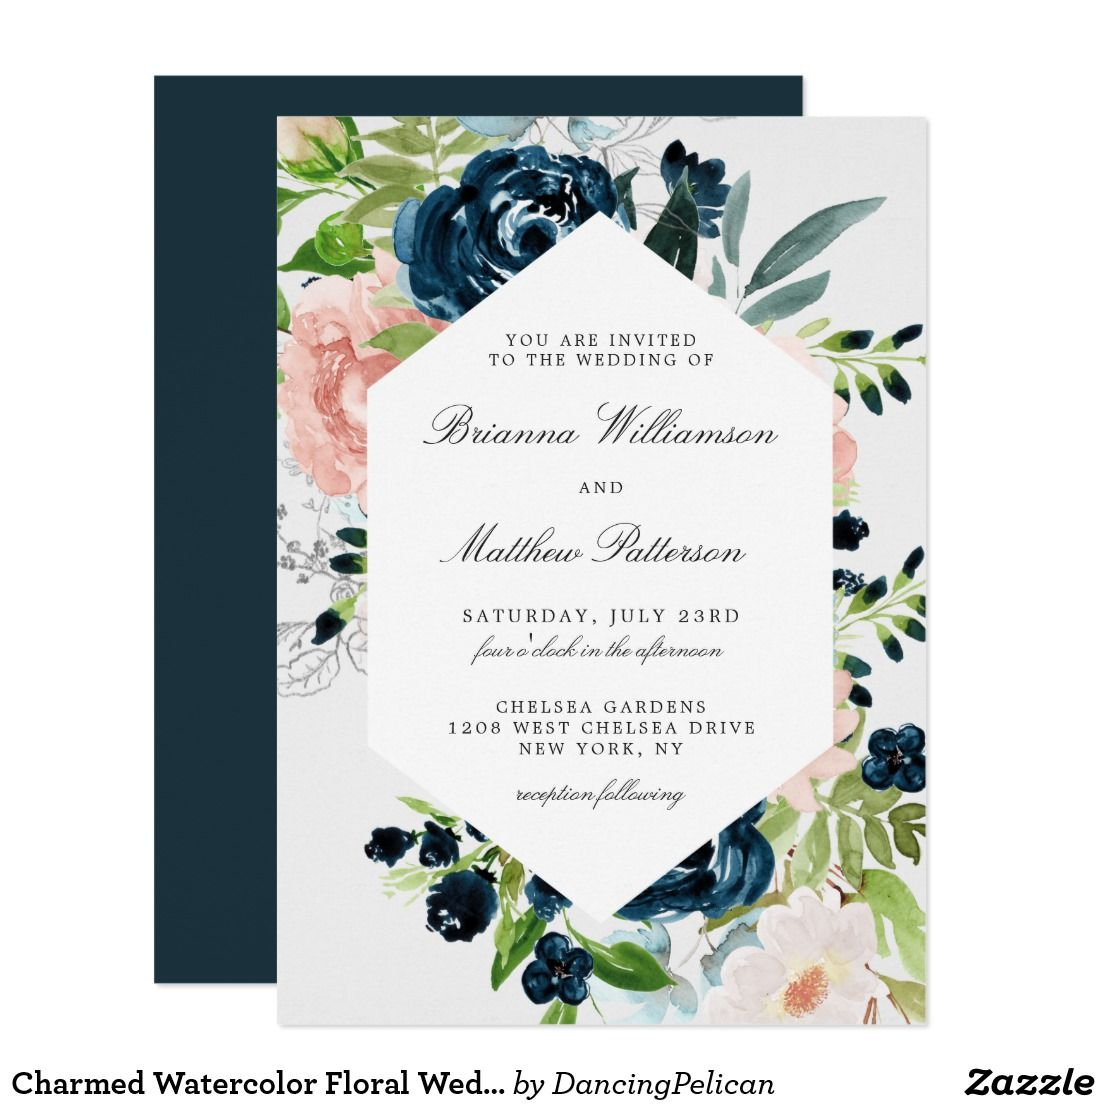 Charmed Watercolor Floral Wedding Invitation Zazzle Com Blue